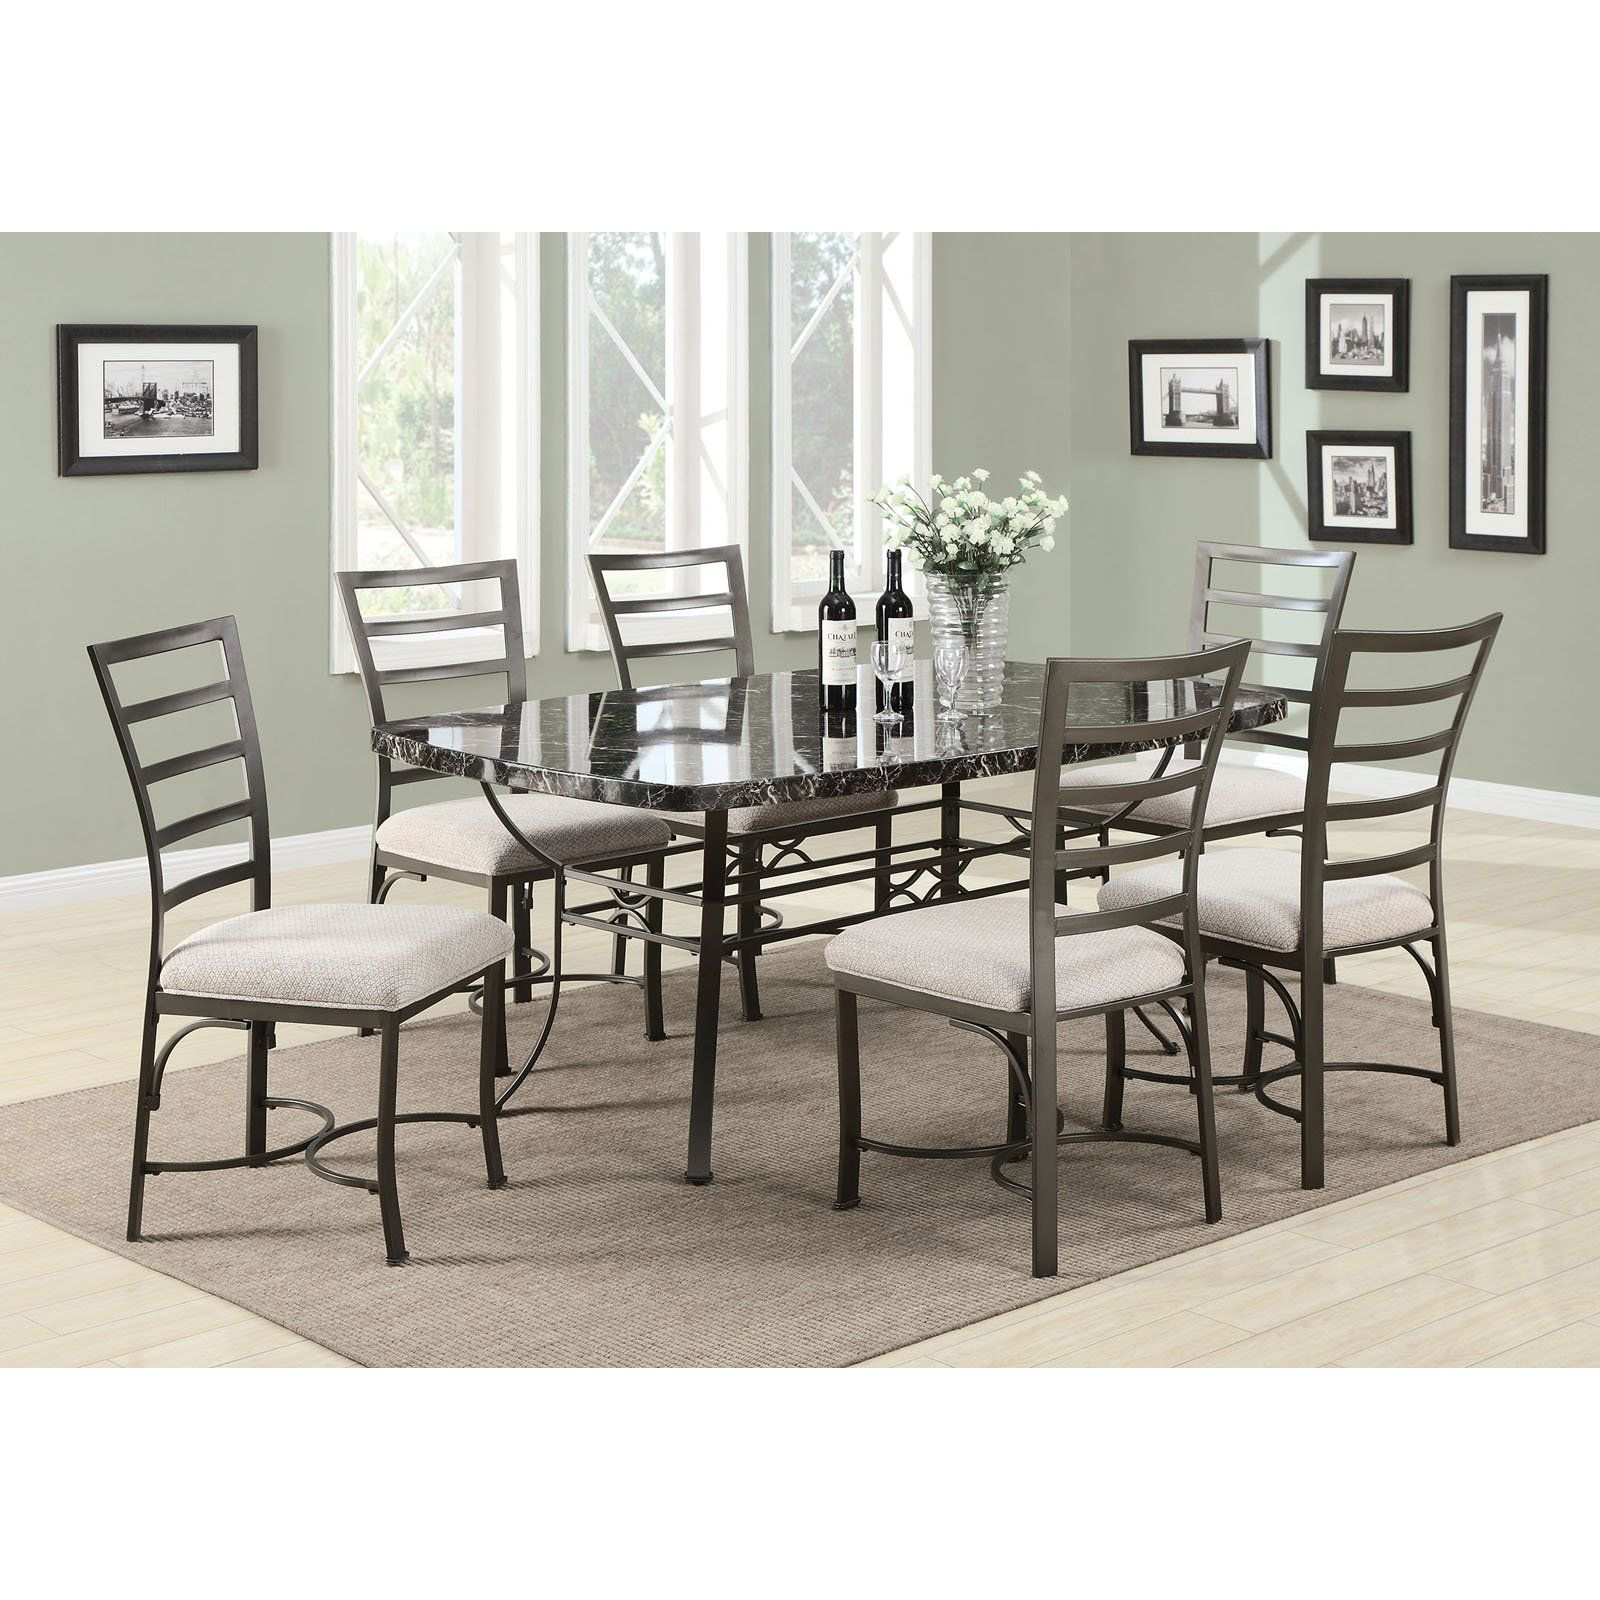 Acme Furniture Daisy 7 Piece Rectangular Faux Marble Dining Table Delectable Acme Dining Room Set Design Decoration